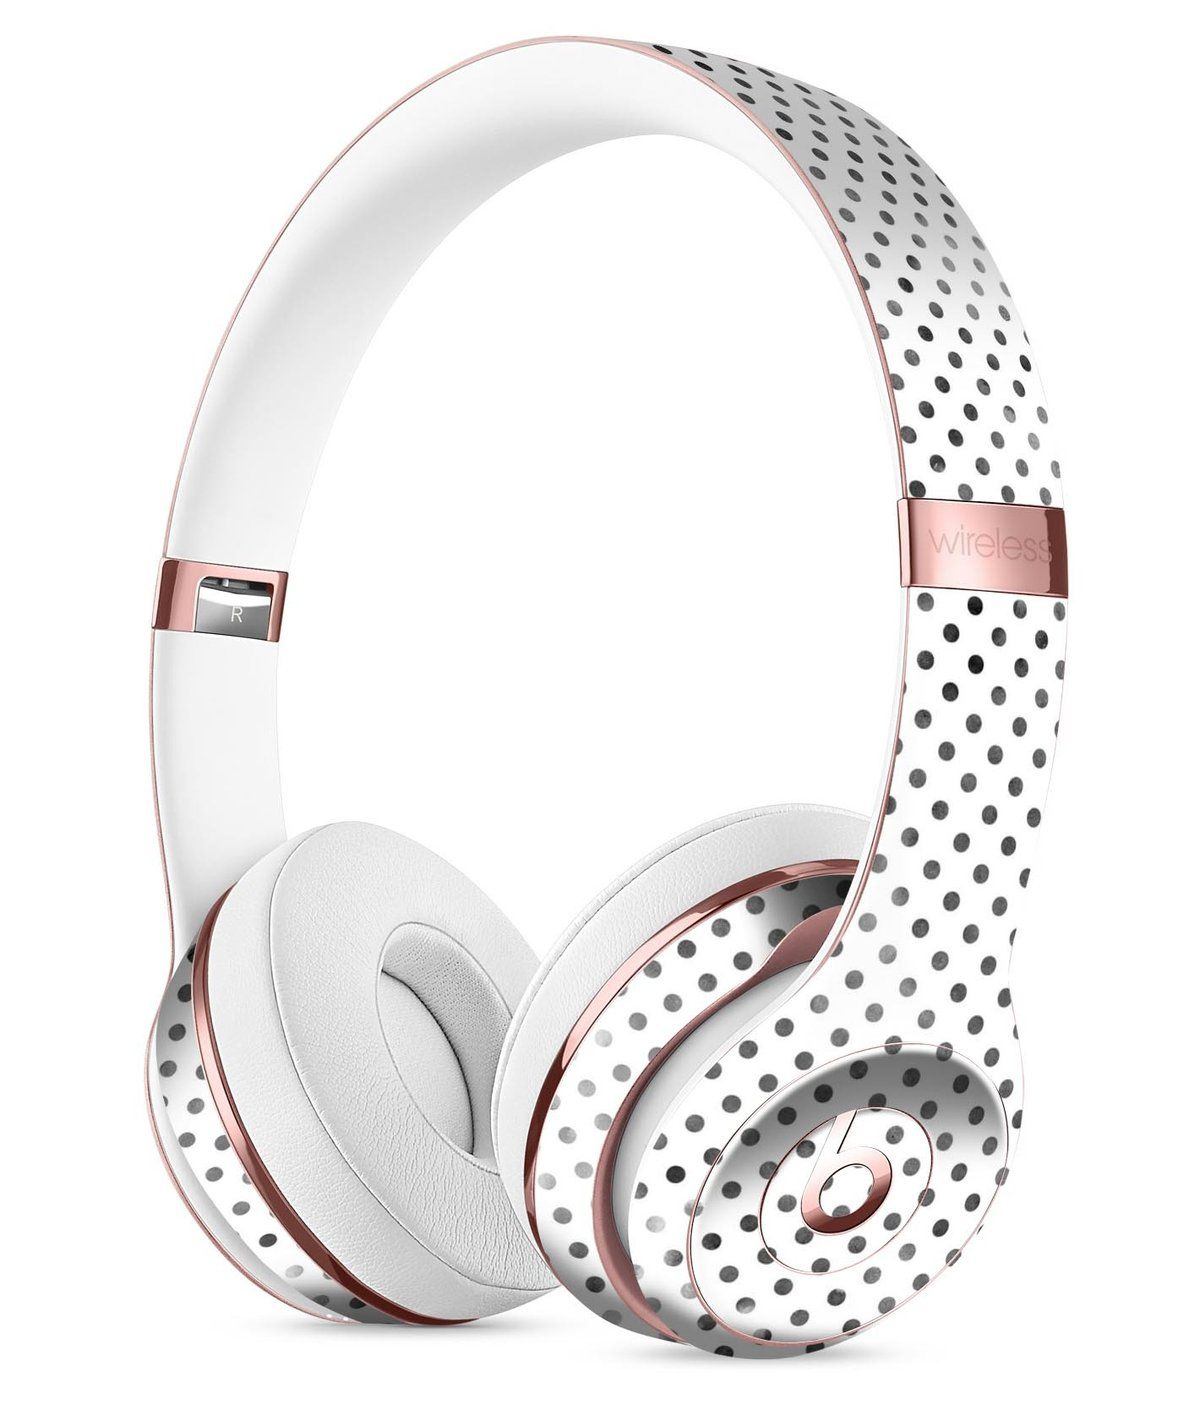 undefeated x on feet images of high fashion Beats by dre | Beats en 2019 | Casques beats, Casque beats ...